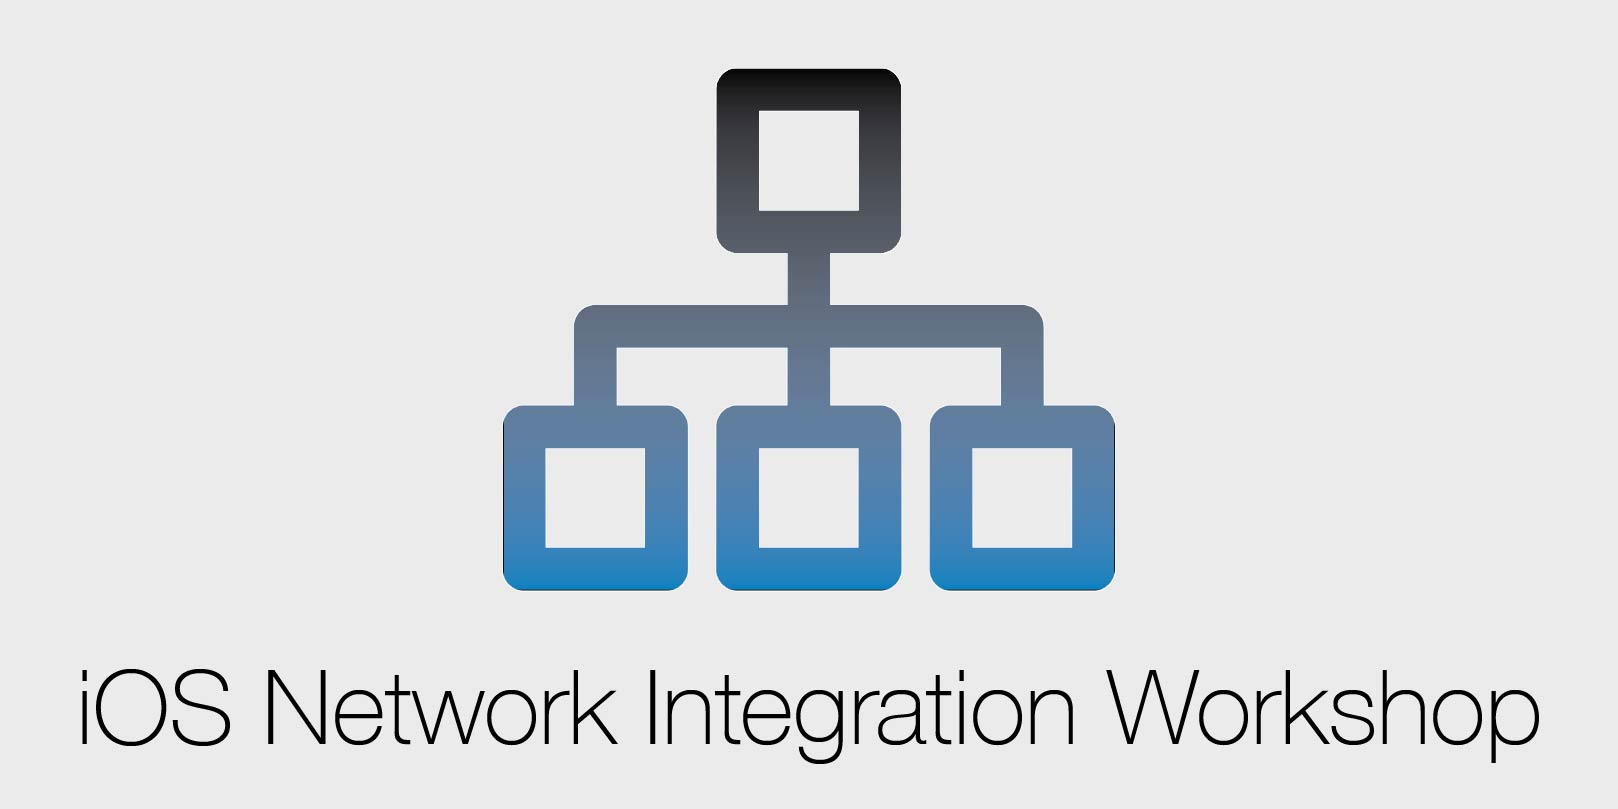 iOS Network Integration Workshop